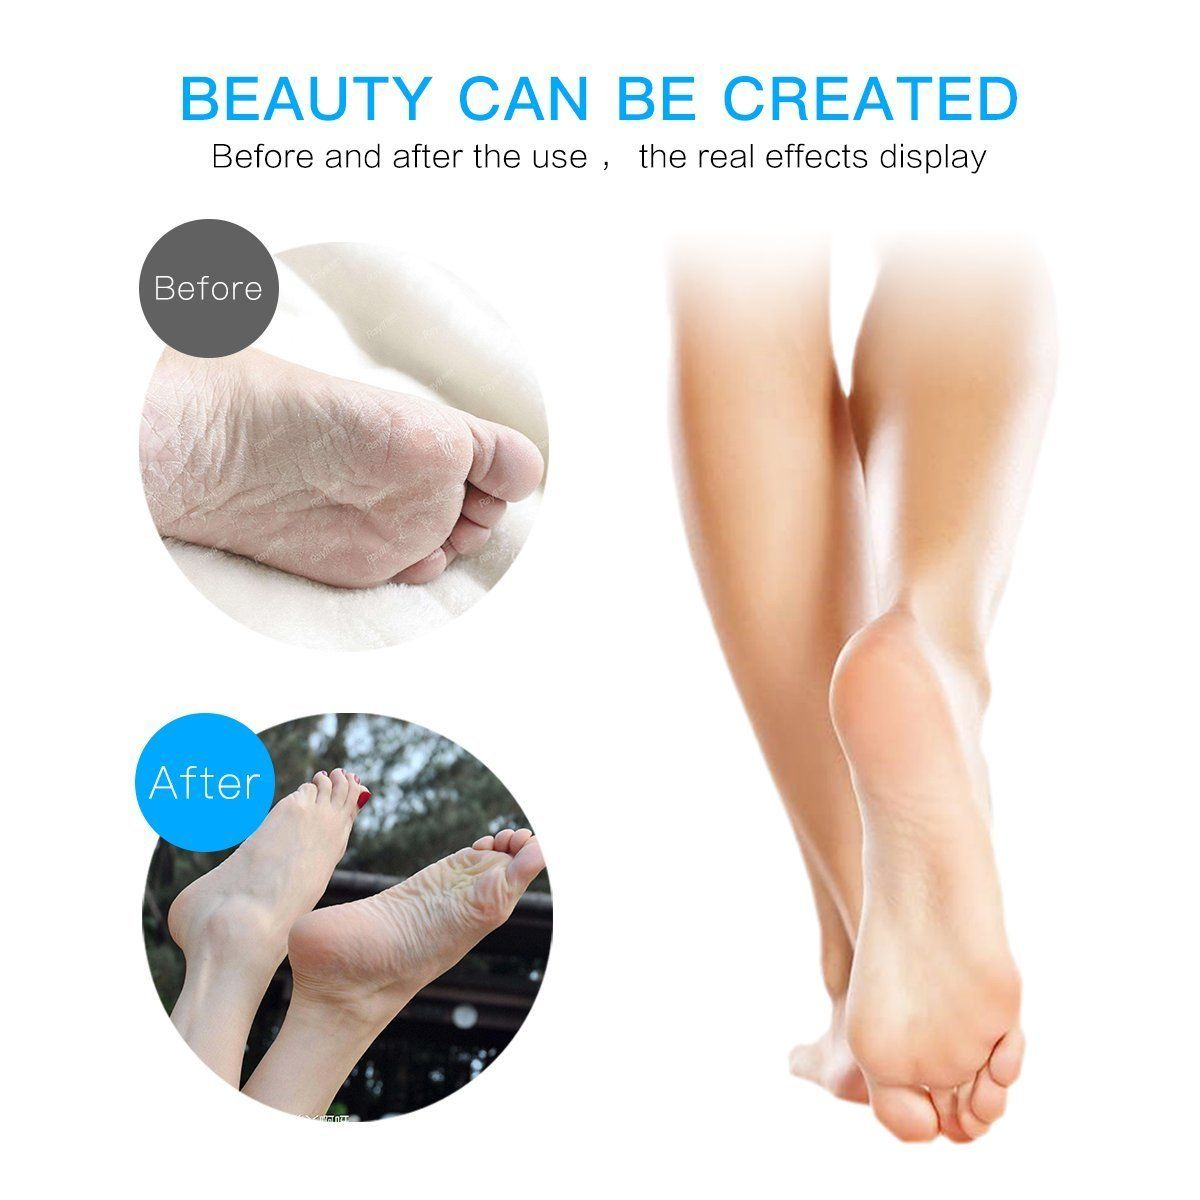 Amazon Com Dr Heiz Rechargeable Callus Remover With Led Light Electric Foot File Remove Cracked Dead Thick Hard Skin R Foot File Callus Removal Pedicure Tools